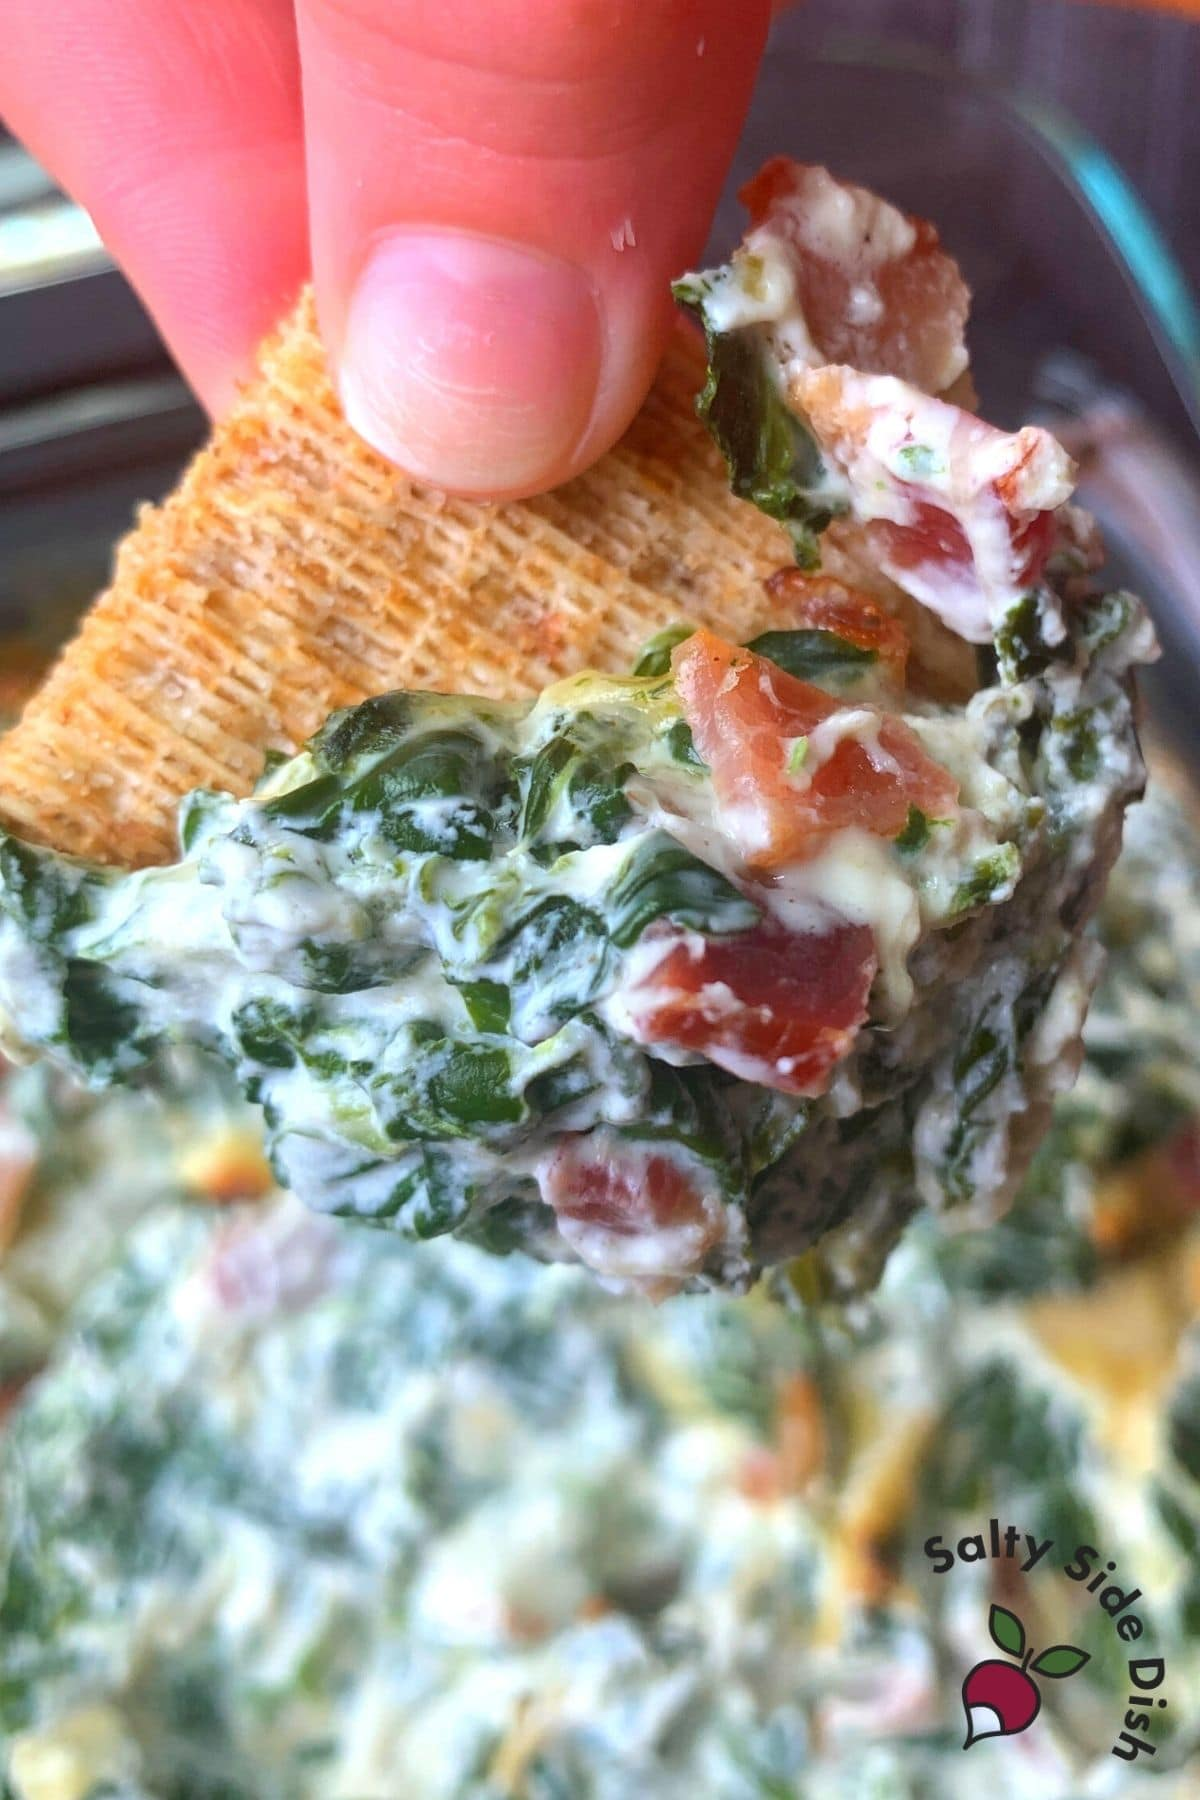 chunks of bacon on a triscuit with artichoke spinach dip being held by fingers